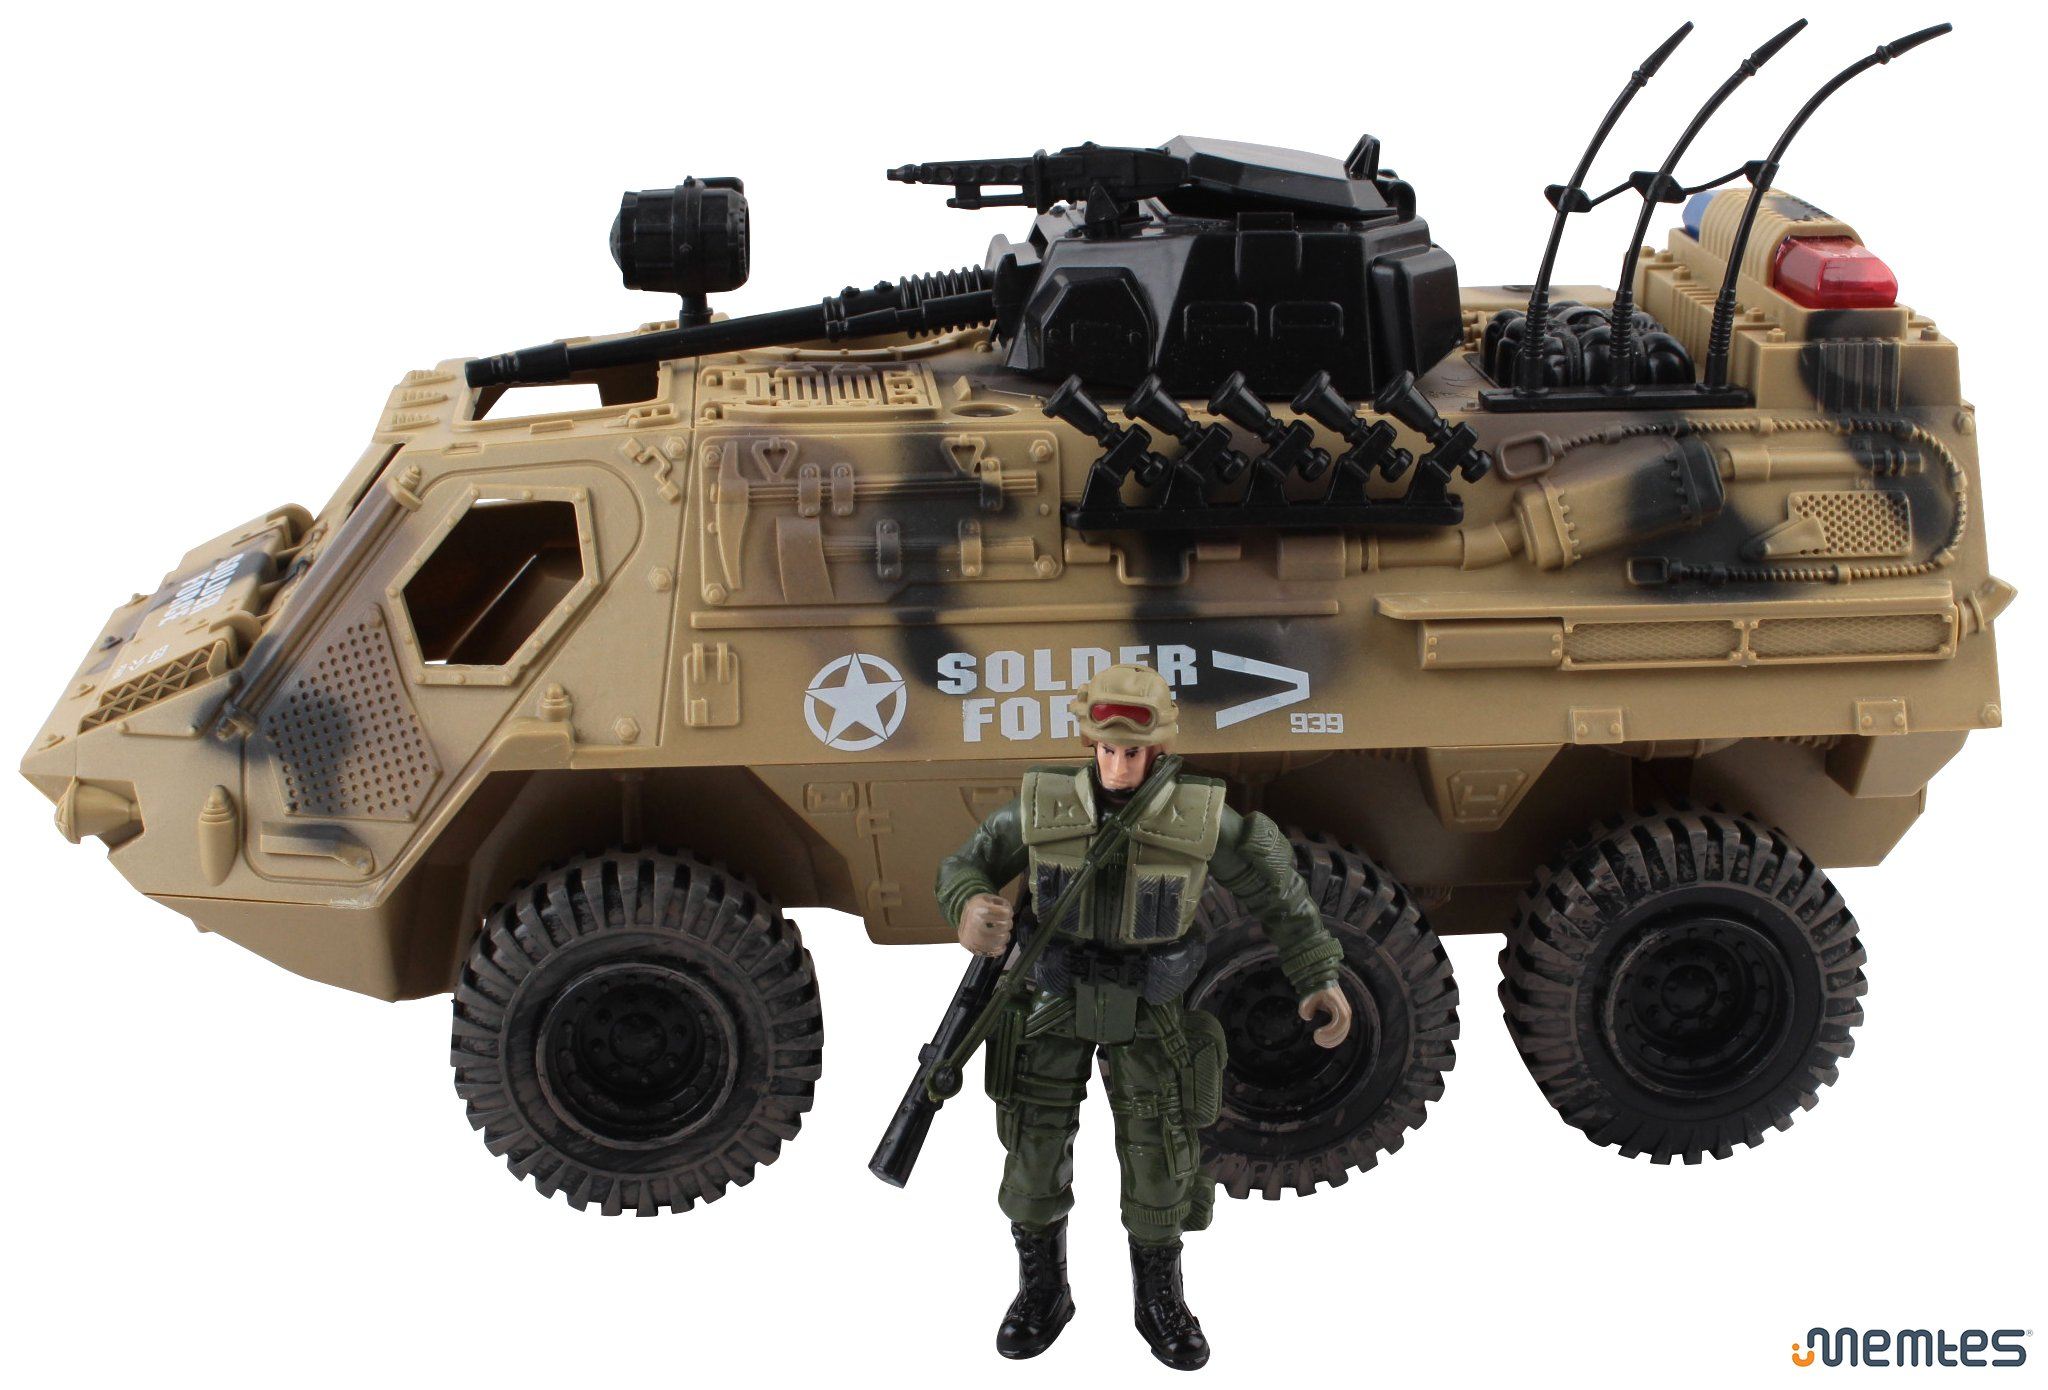 Memtes Military Fighter Army Truck Tank Toy with Mini Army Soldier with Lights and Sound by Memtes (Image #2)